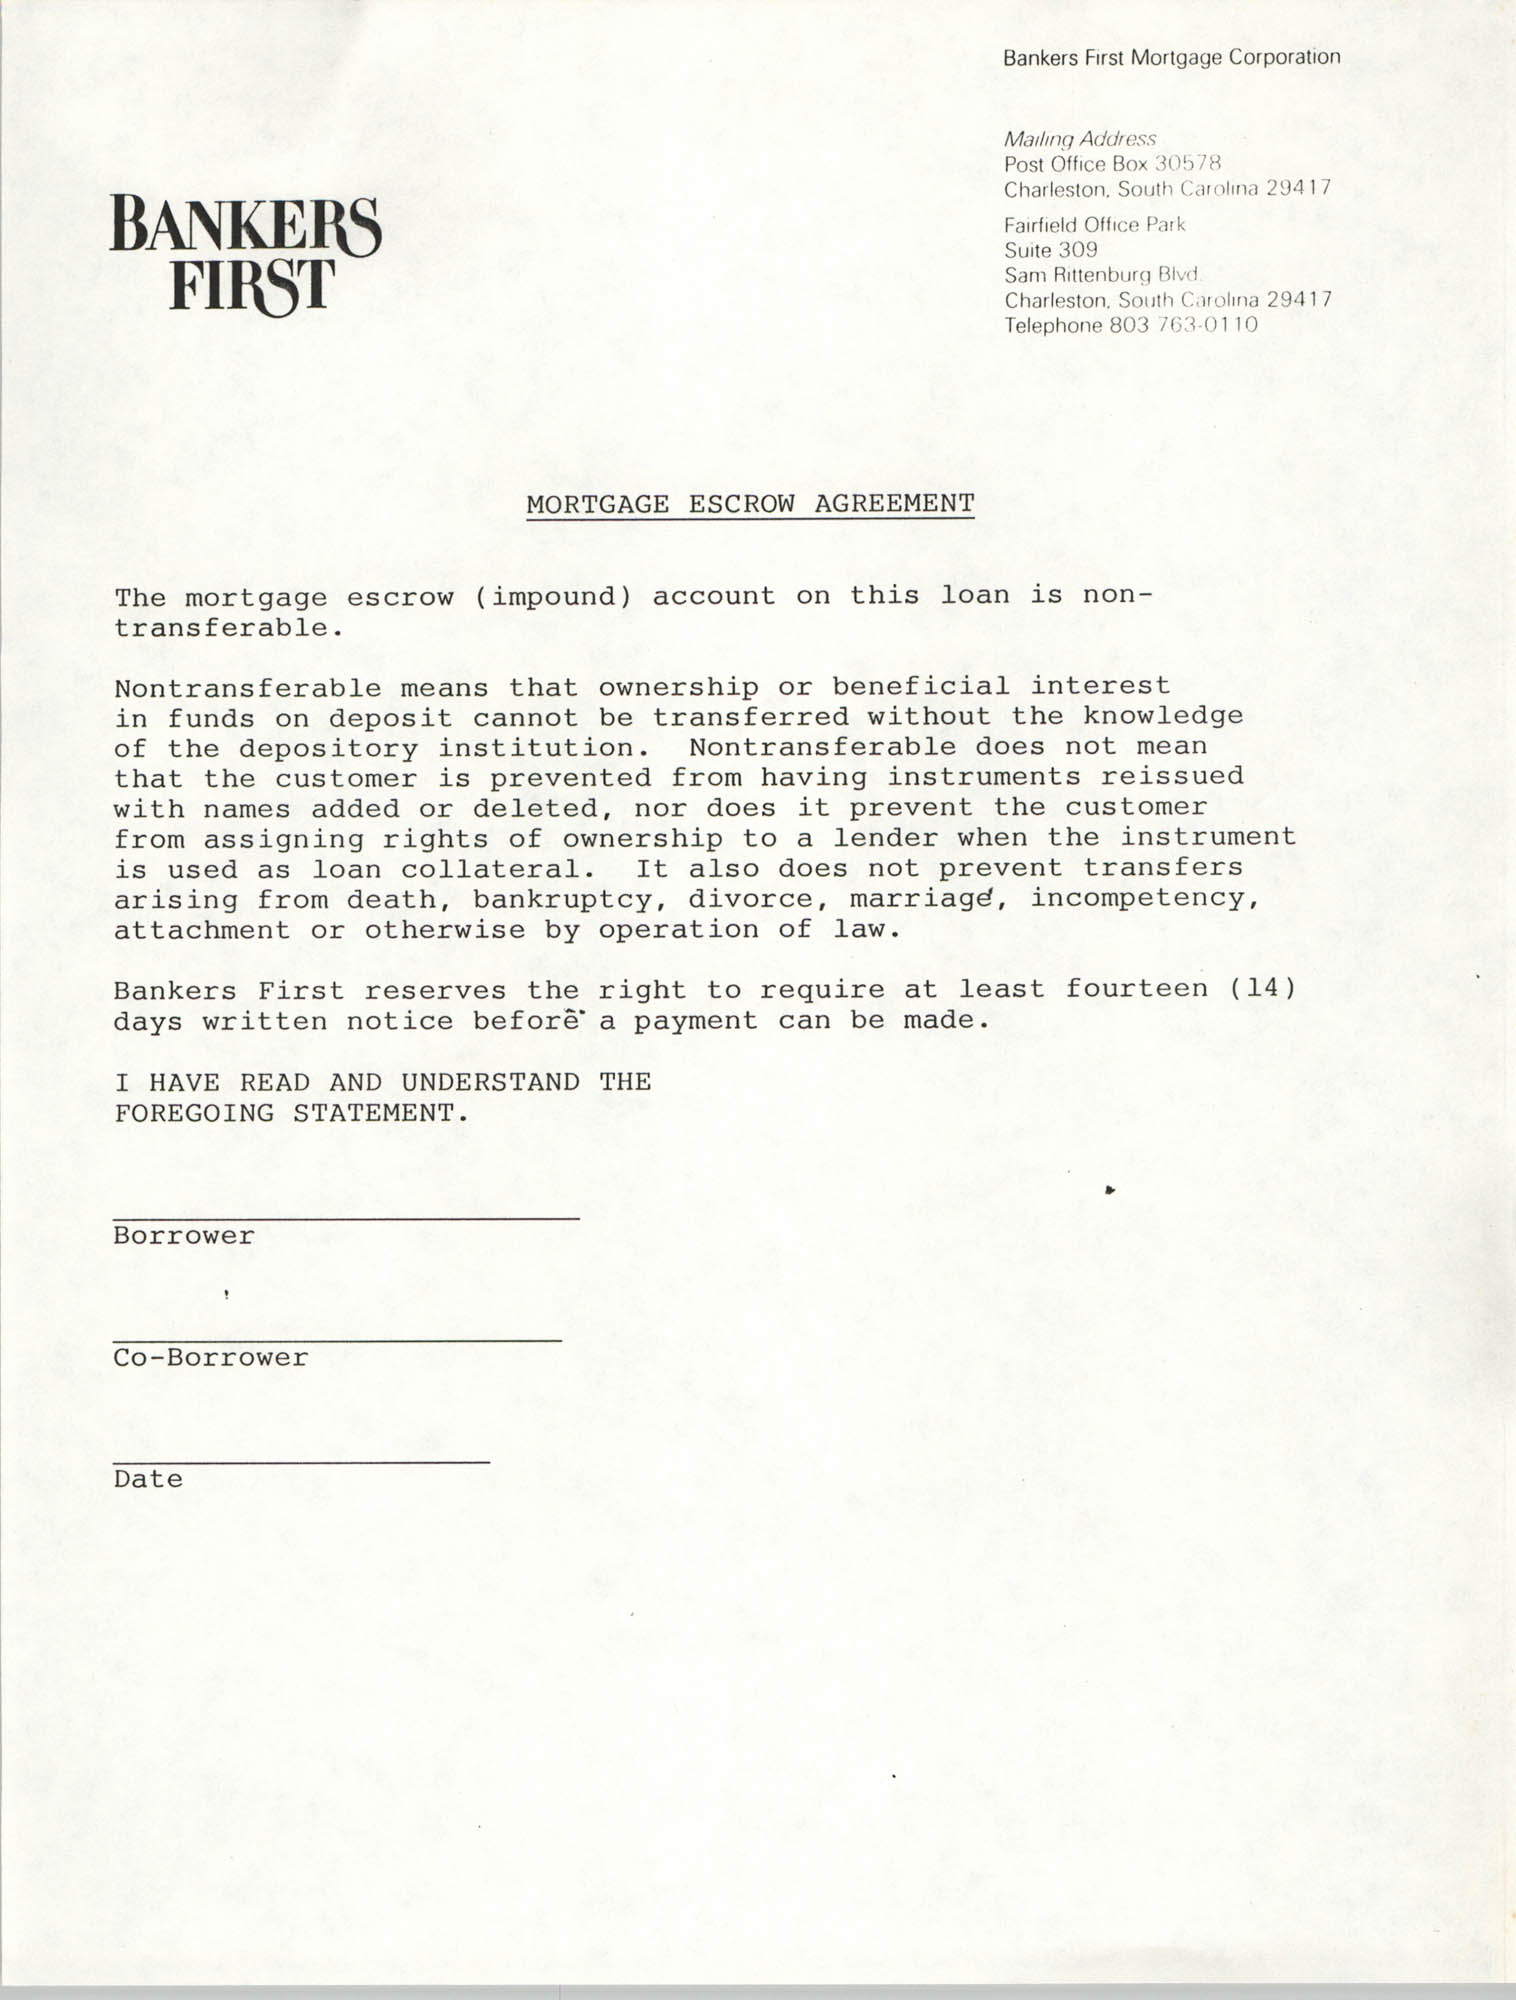 Mortgage Escrow Agreement, Bankers First Mortgage Corporation